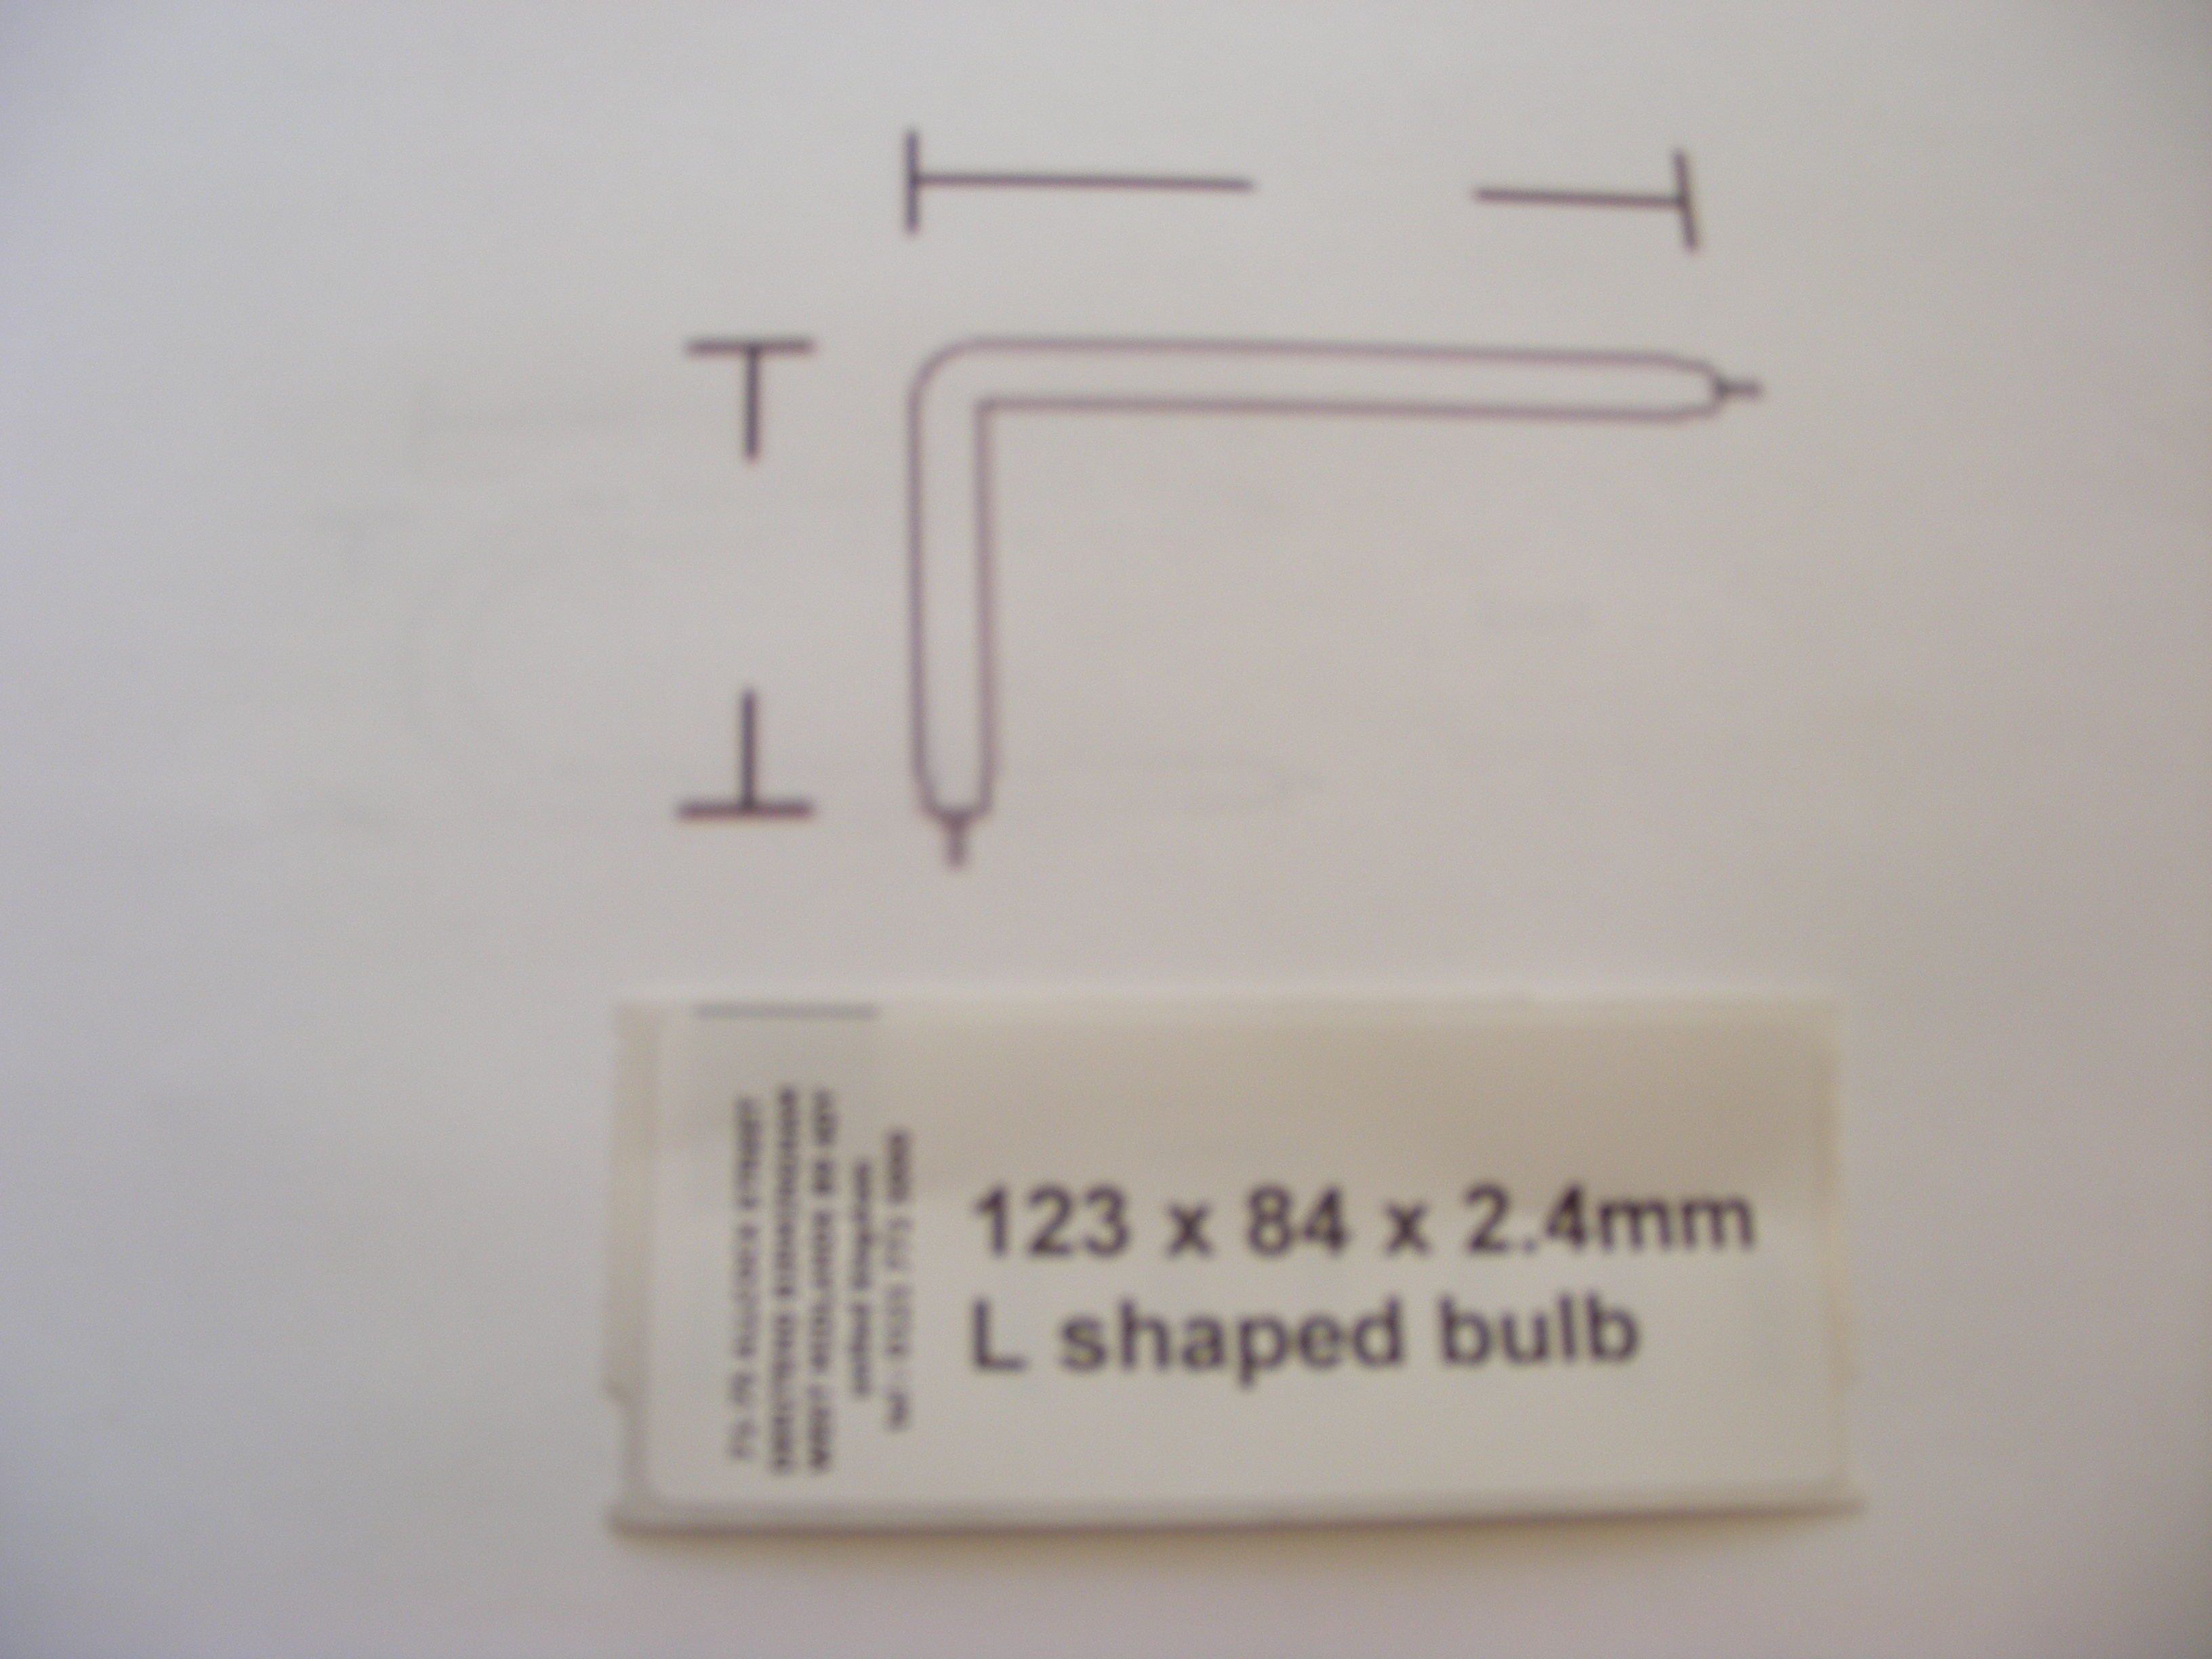 123 x 84 x 2.4mm L shaped bulb